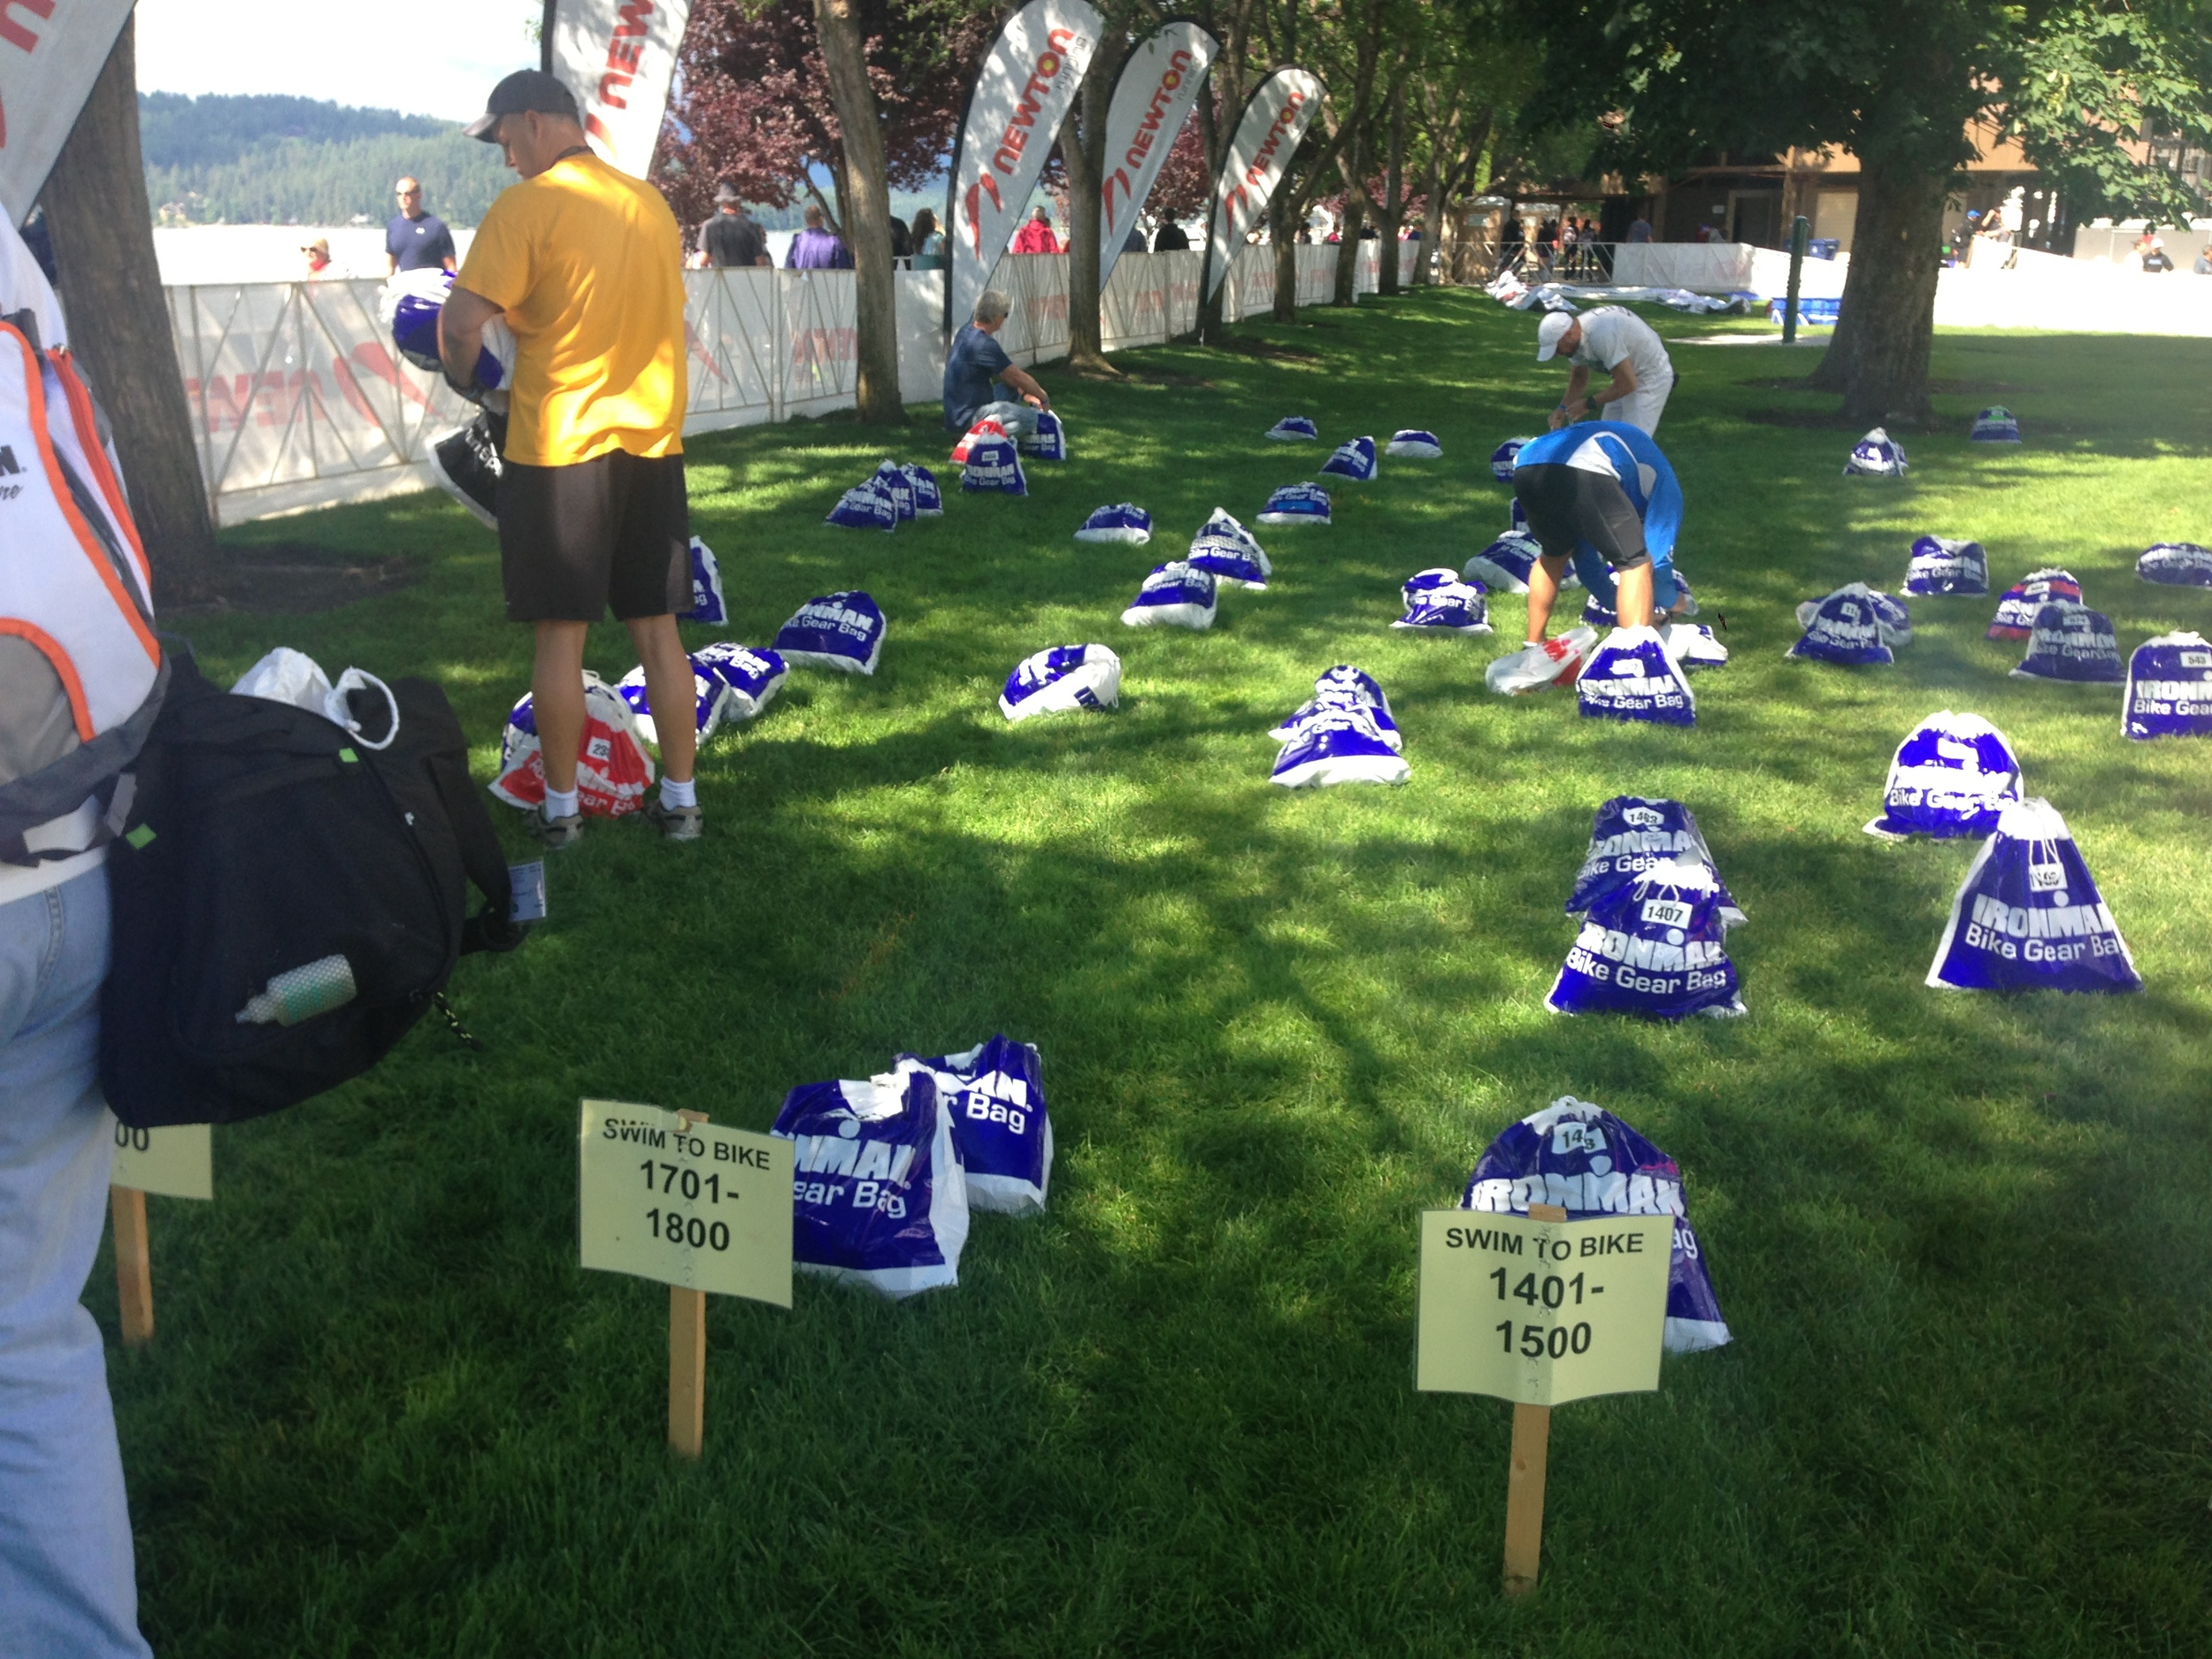 Bike bags starting to line up in little numbered rows. Run bags were done the same at another spot on the grounds.